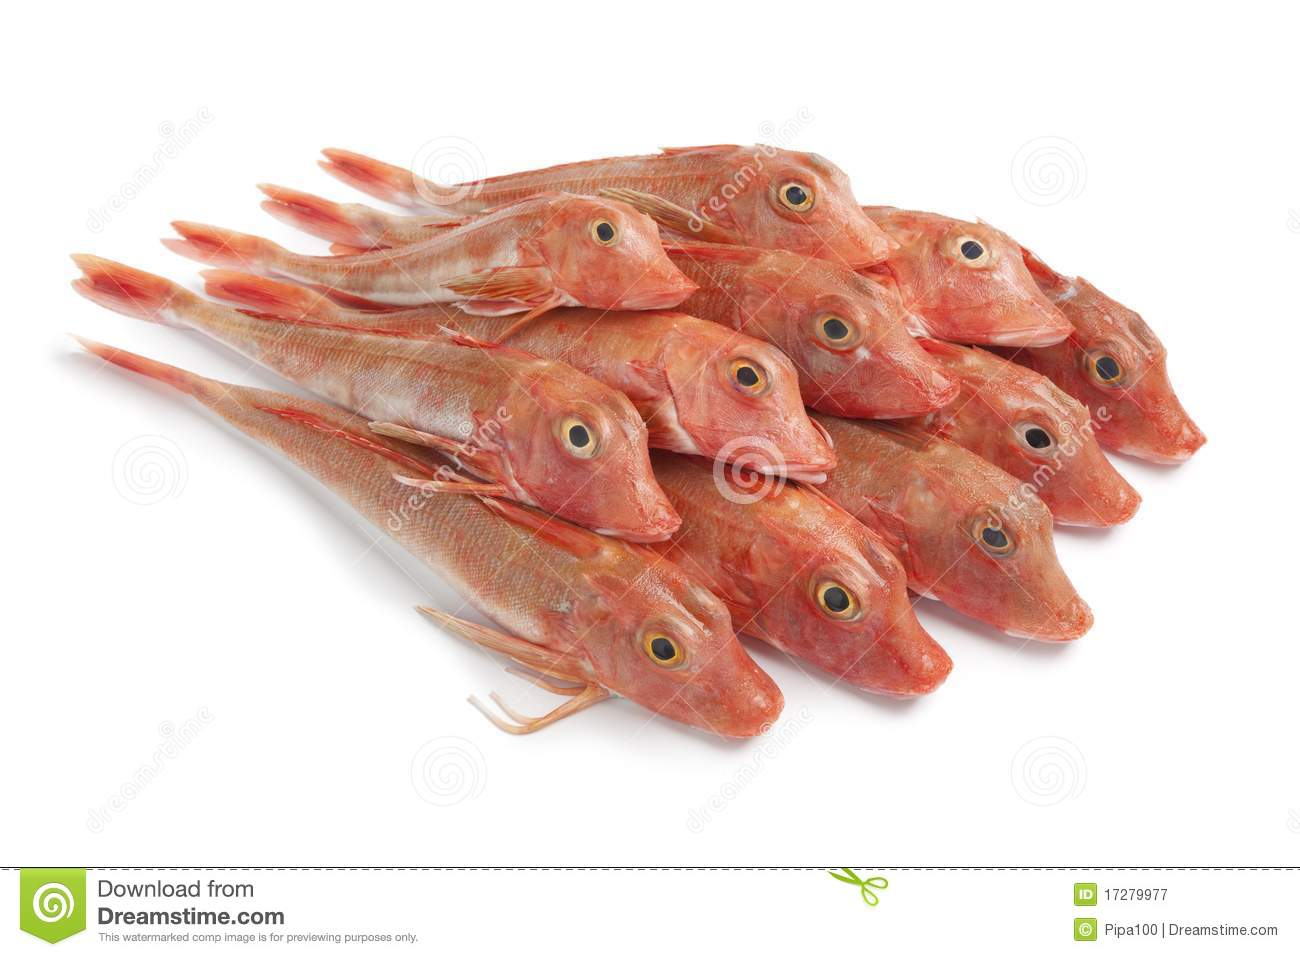 Pile Of Red Tub Gurnard Fishes Royalty Free Stock Photography - Image ...: www.dreamstime.com/royalty-free-stock-photography-pile-red-tub...